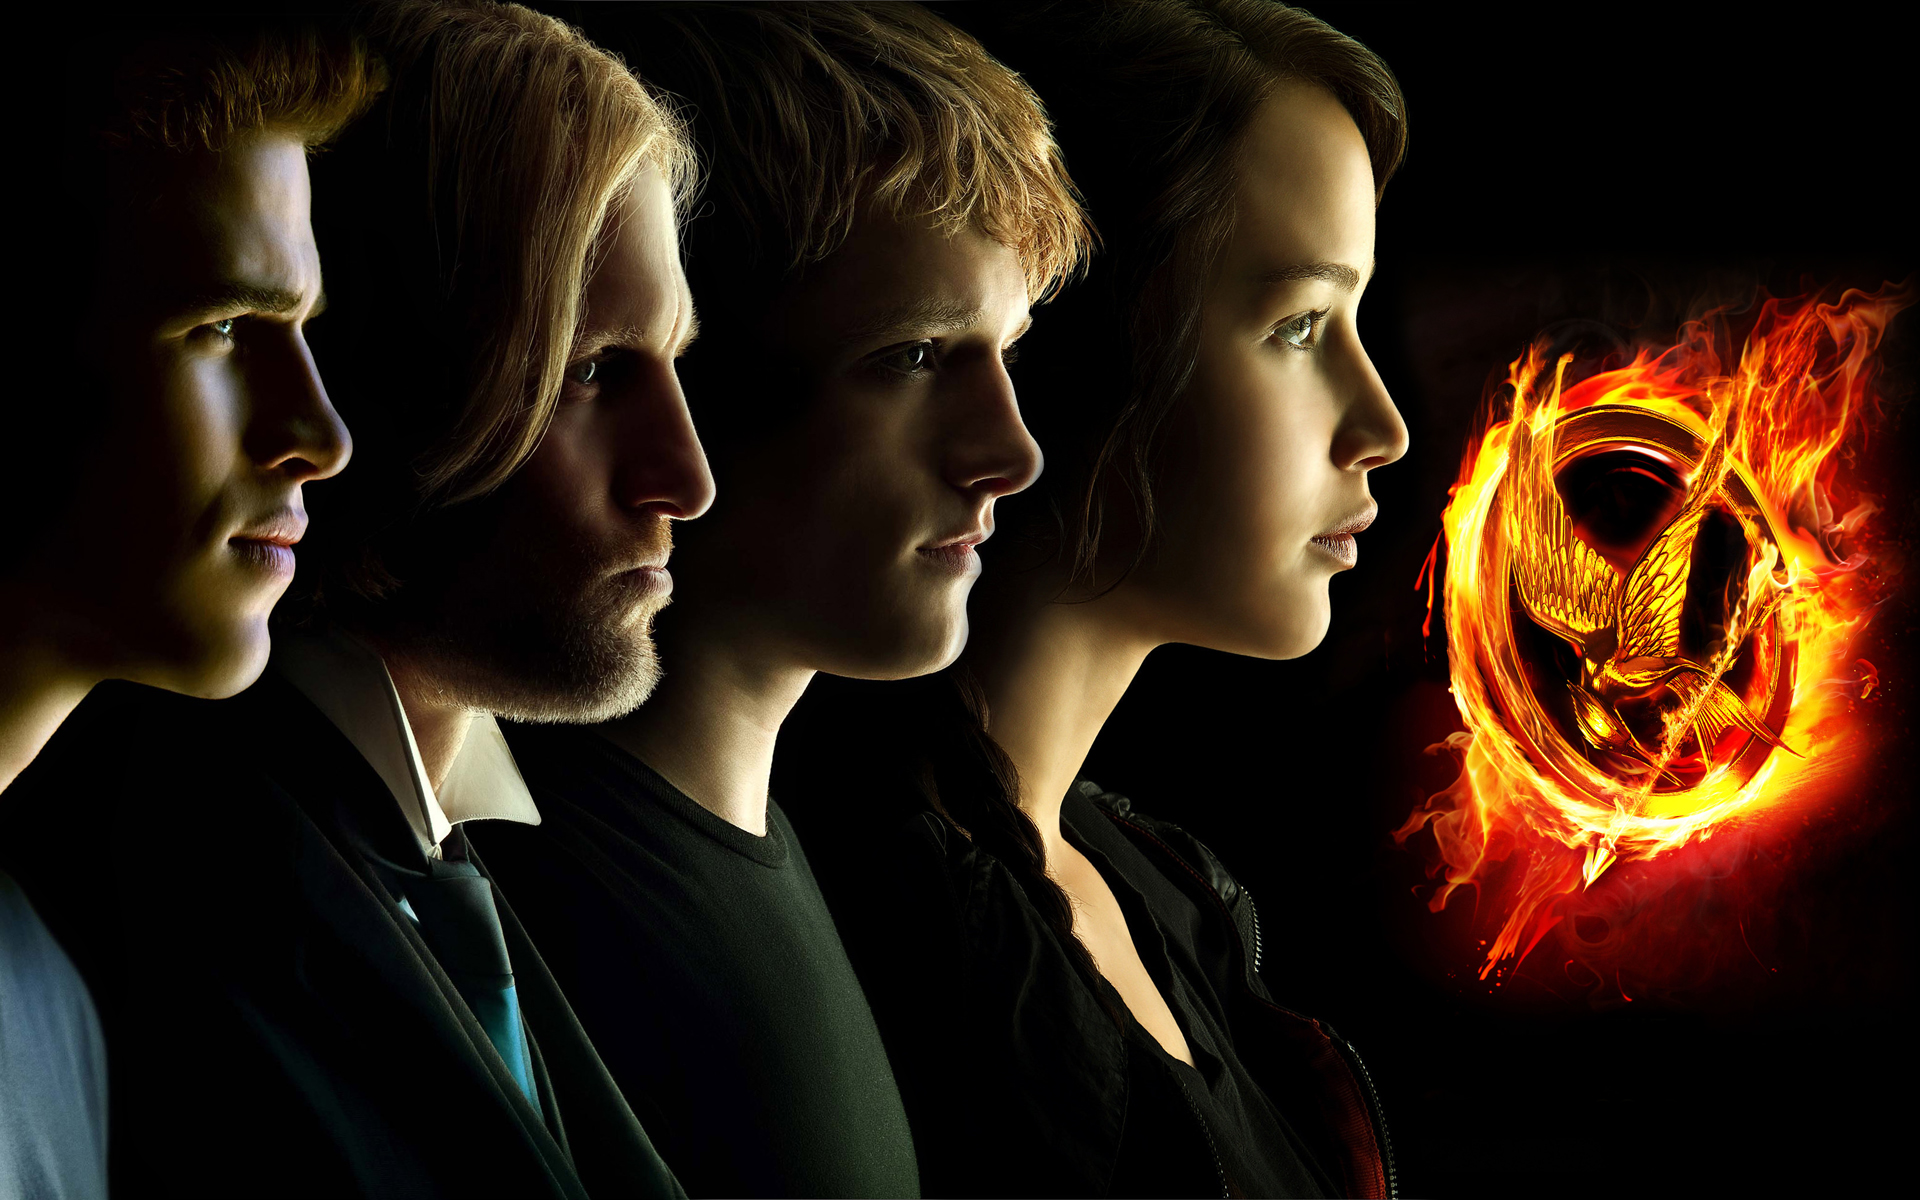 wallpapers of The Hunger Games You are downloading The Hunger Games 1920x1200